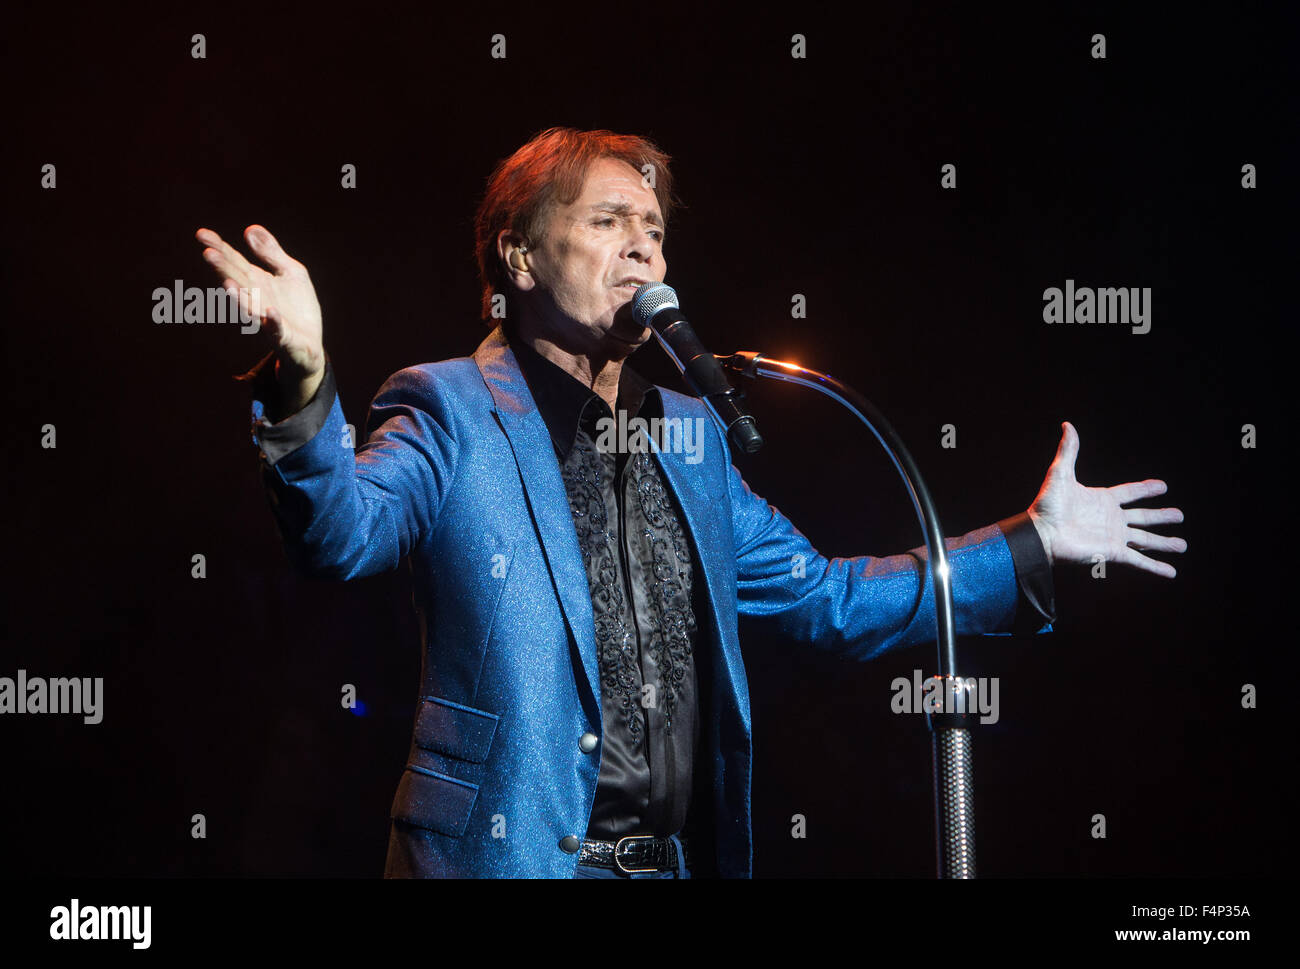 Sir Cliff Richard in concert at the Royal Albert Hall,London.The concert was part of his 75th birthday tour. - Stock Image